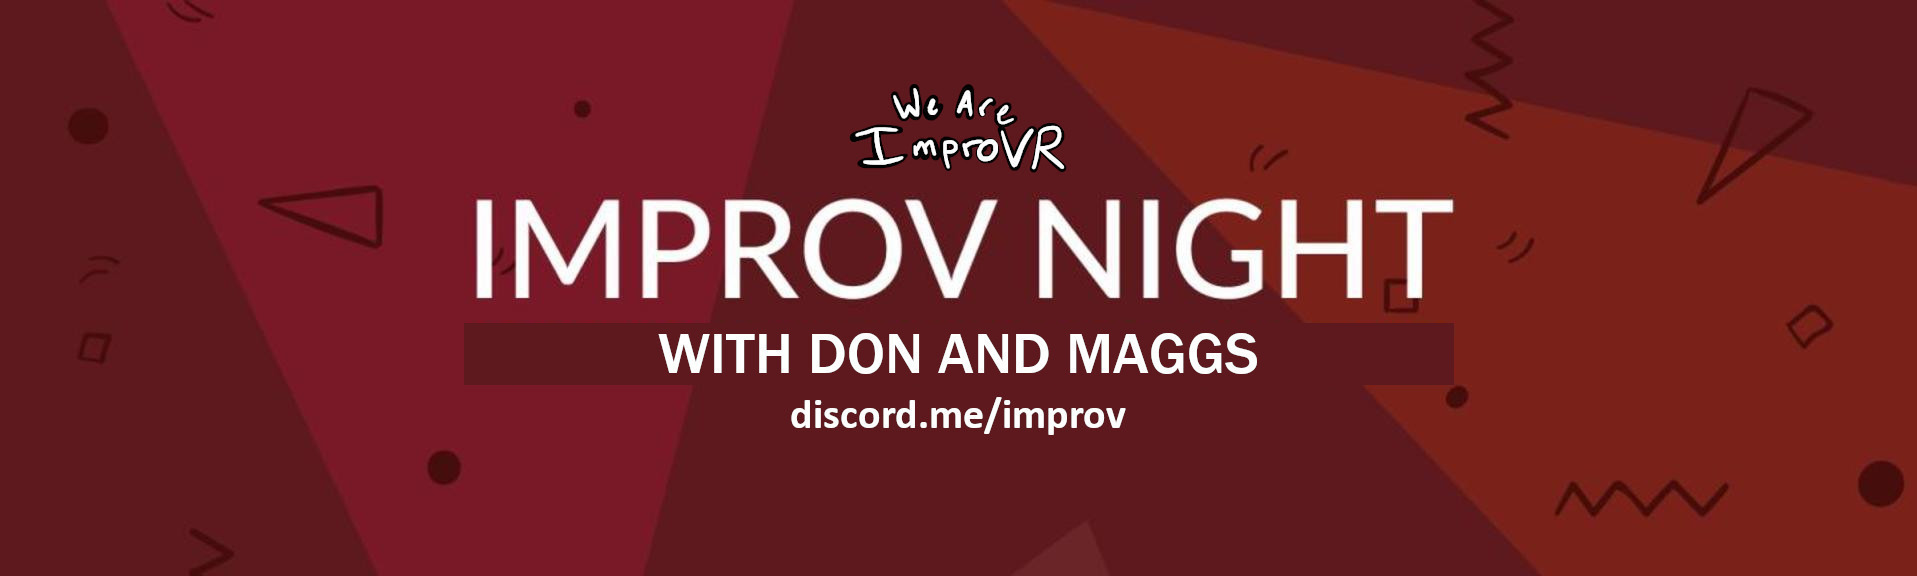 Improv night banner don and maggs